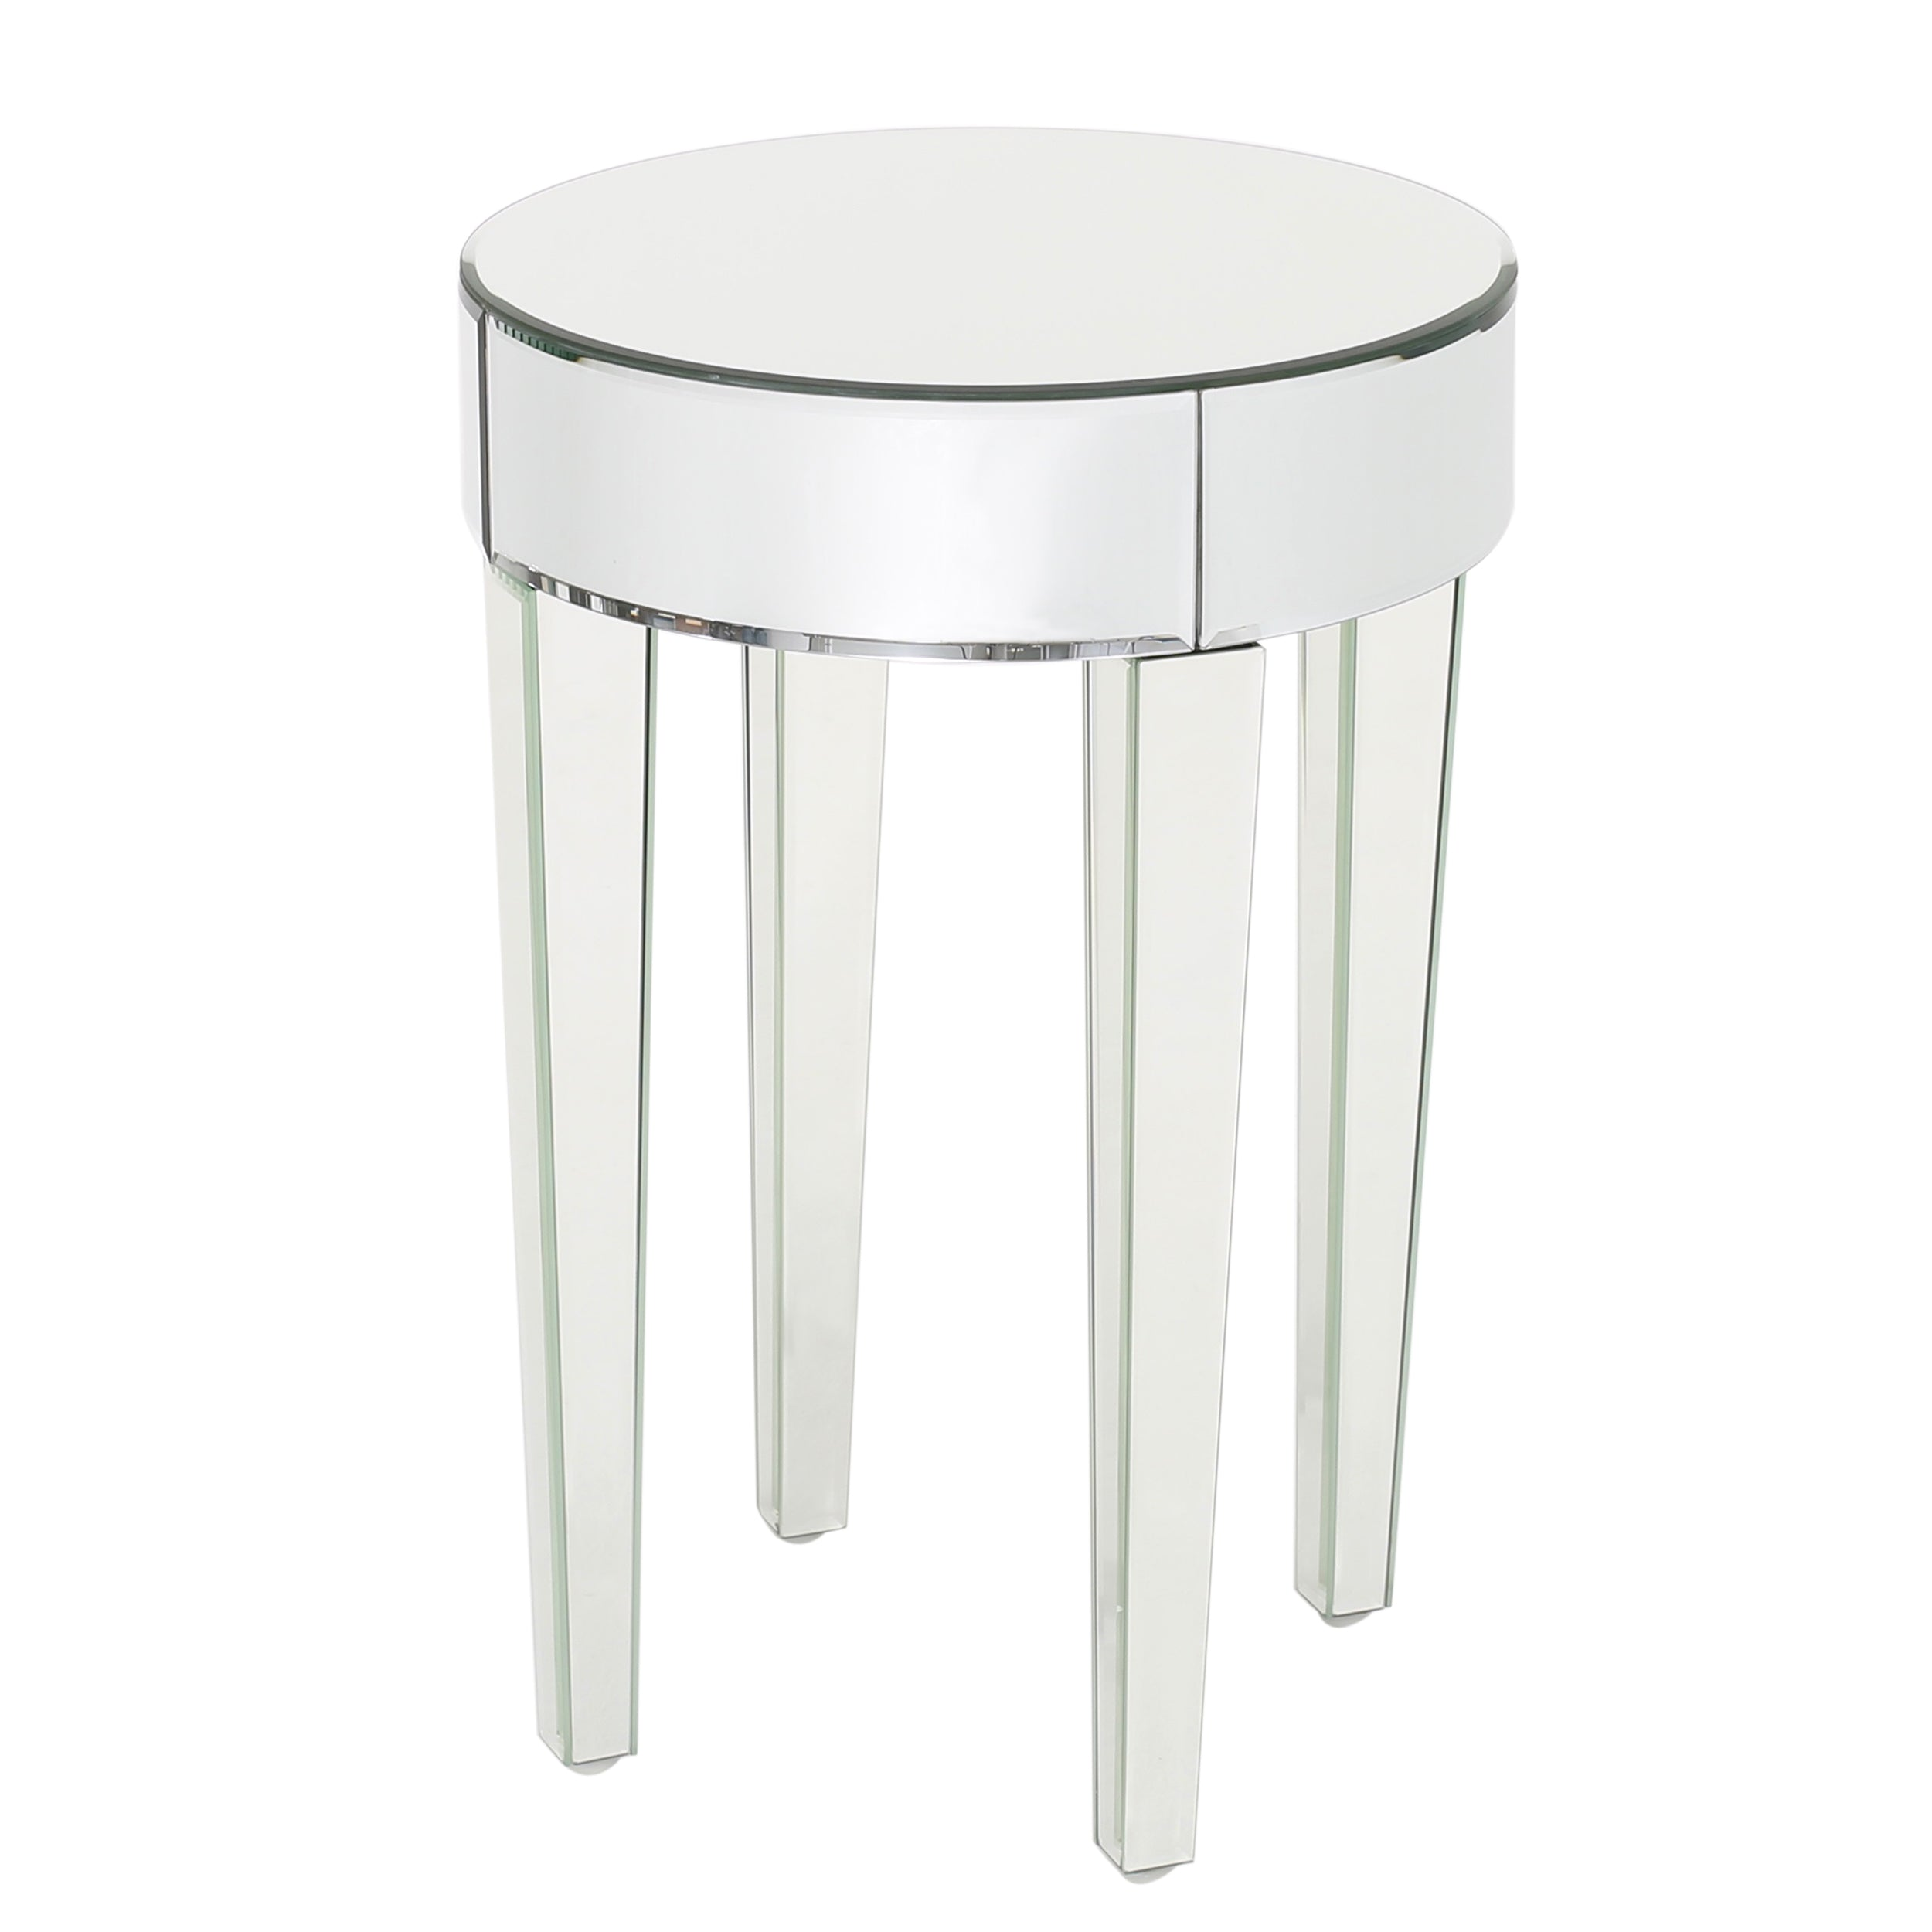 Alvo Modern Glam Round Mirrored Side Table with Tapered Legs Default Title